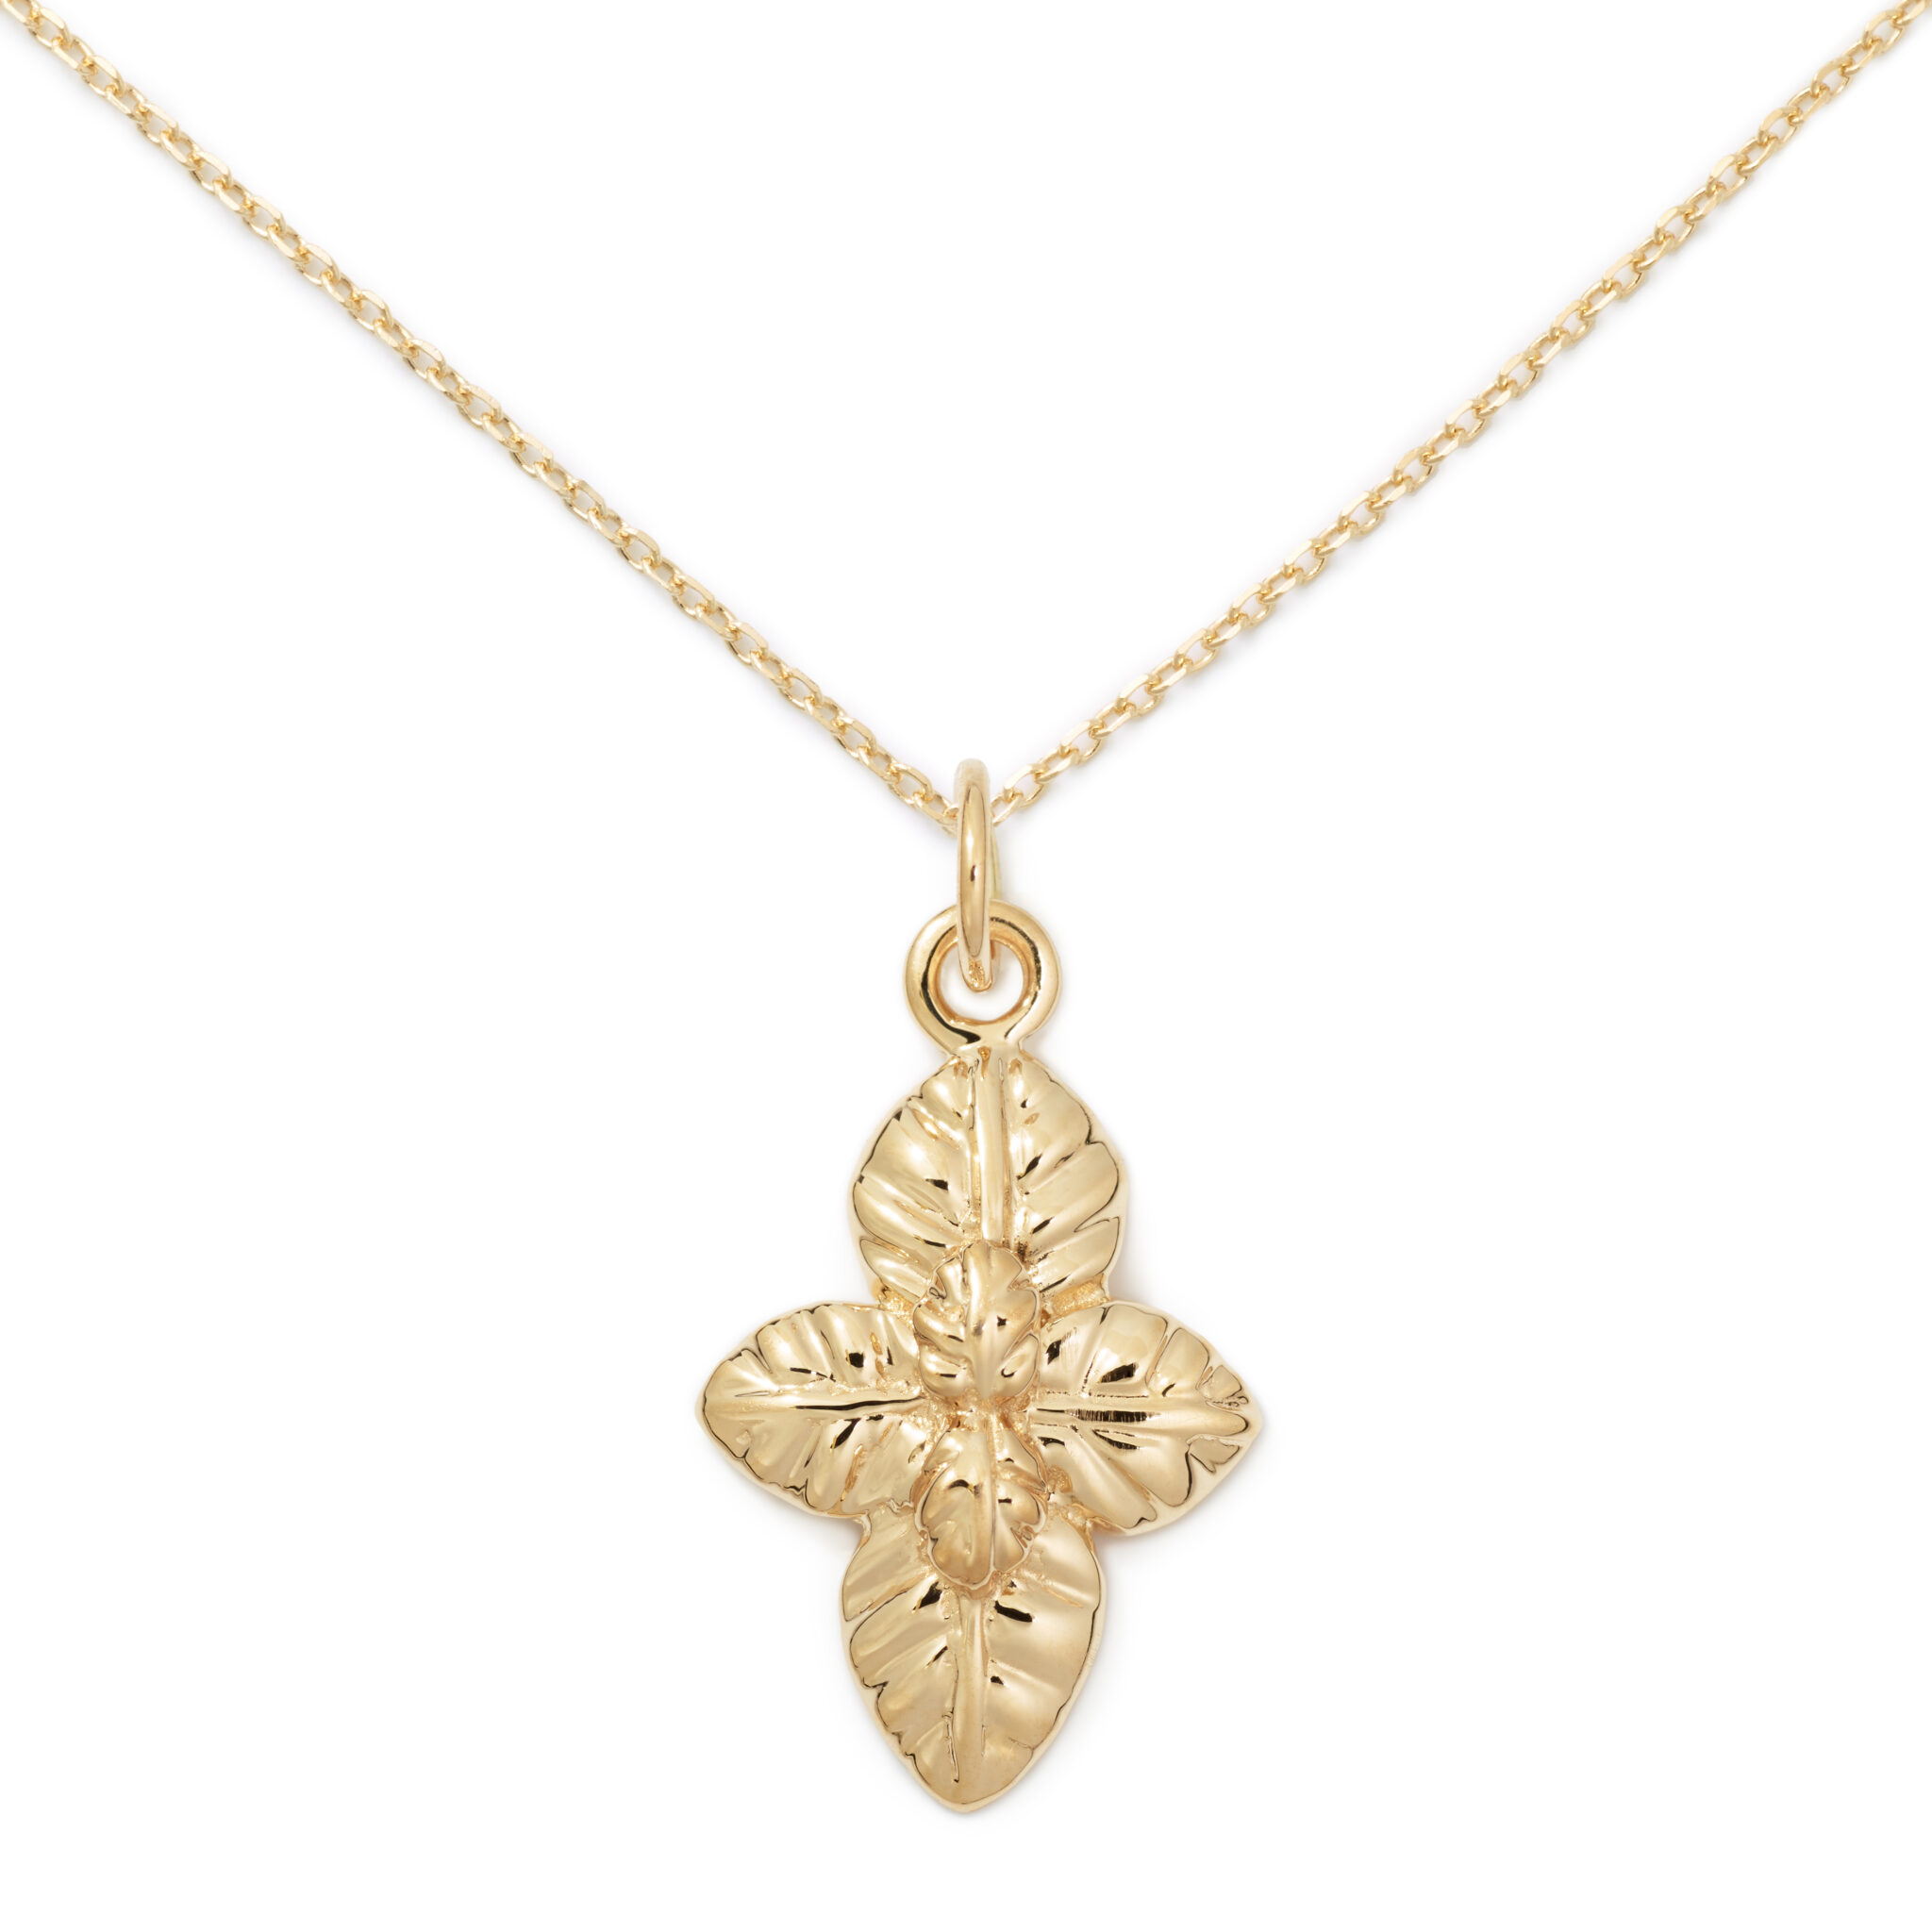 Basil Pendant, 14K Yellow Gold